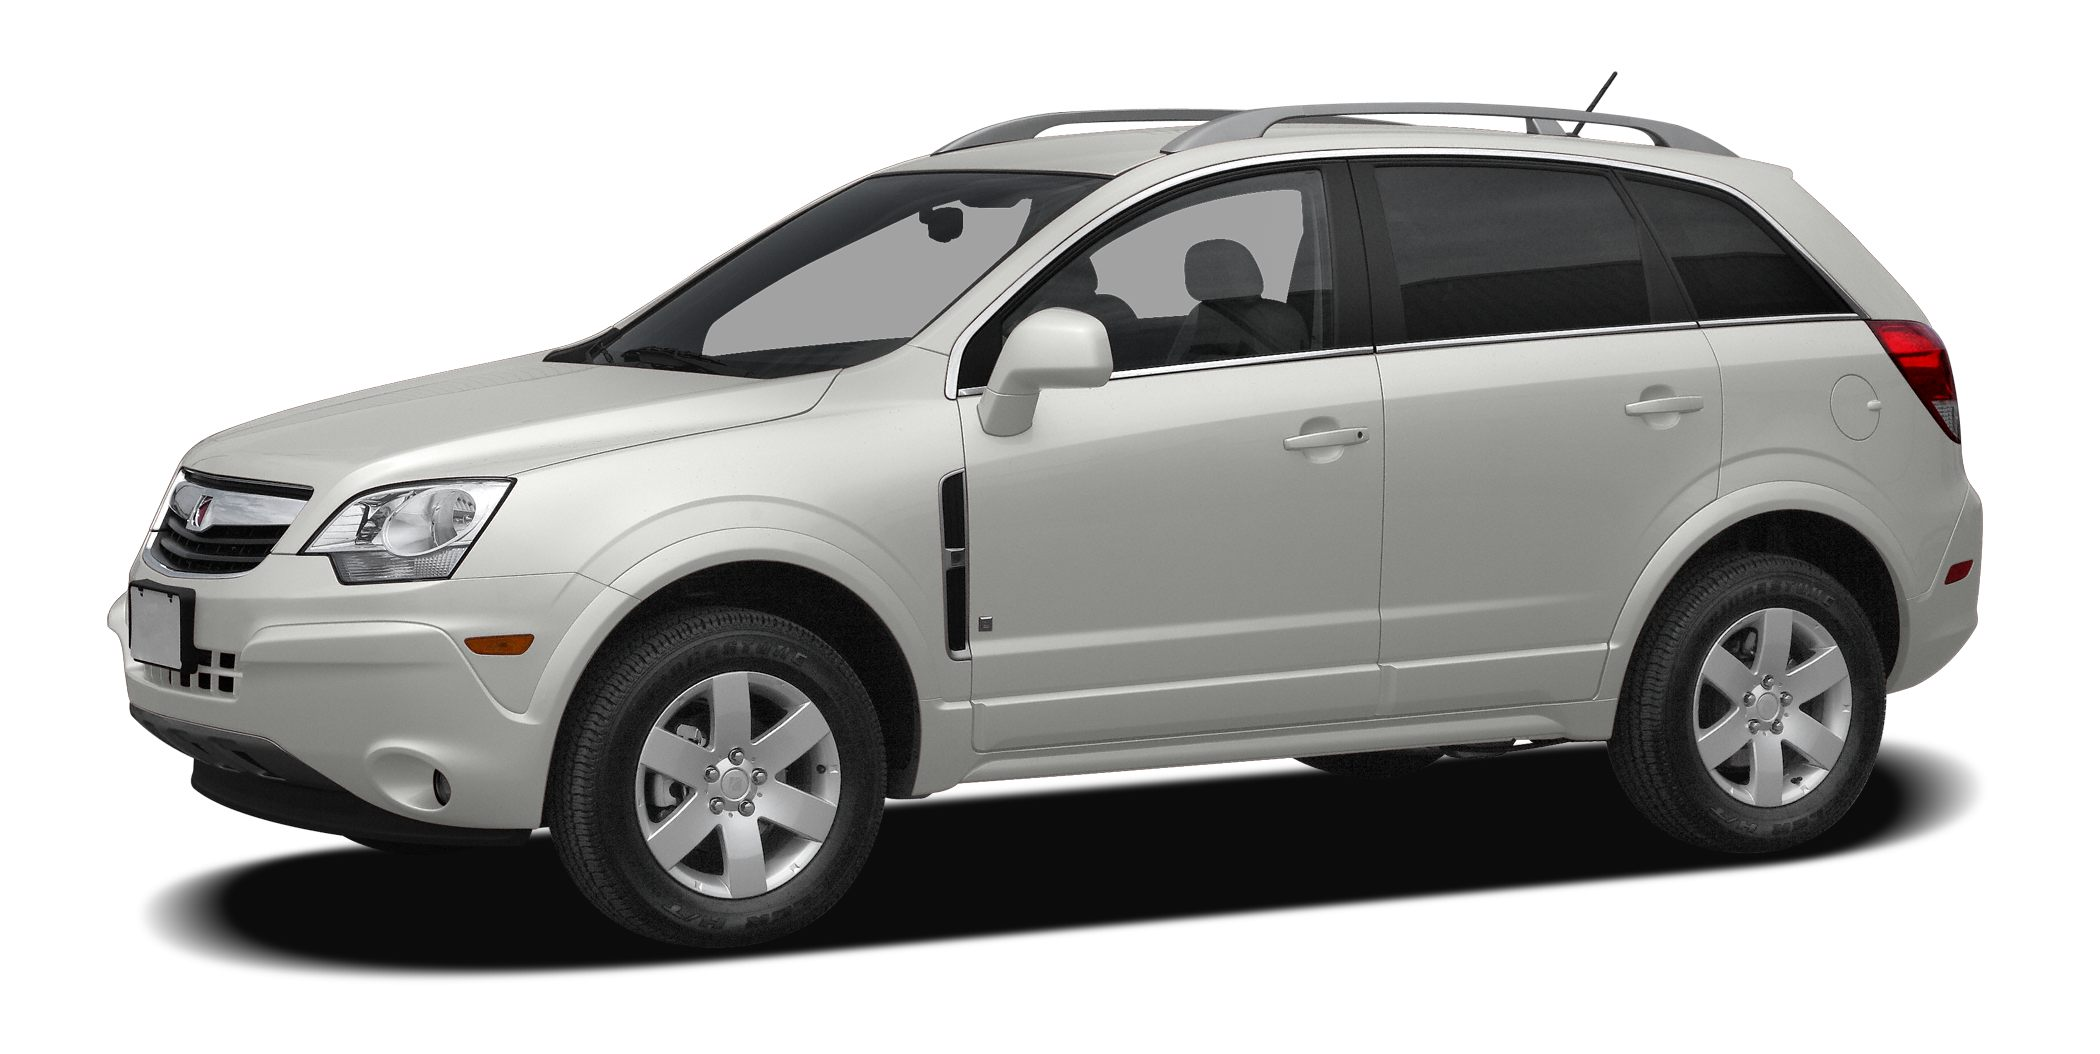 2010 Saturn VUE  Check out this 2010 Saturn VUE we just took in on trade This ice white SUV is in